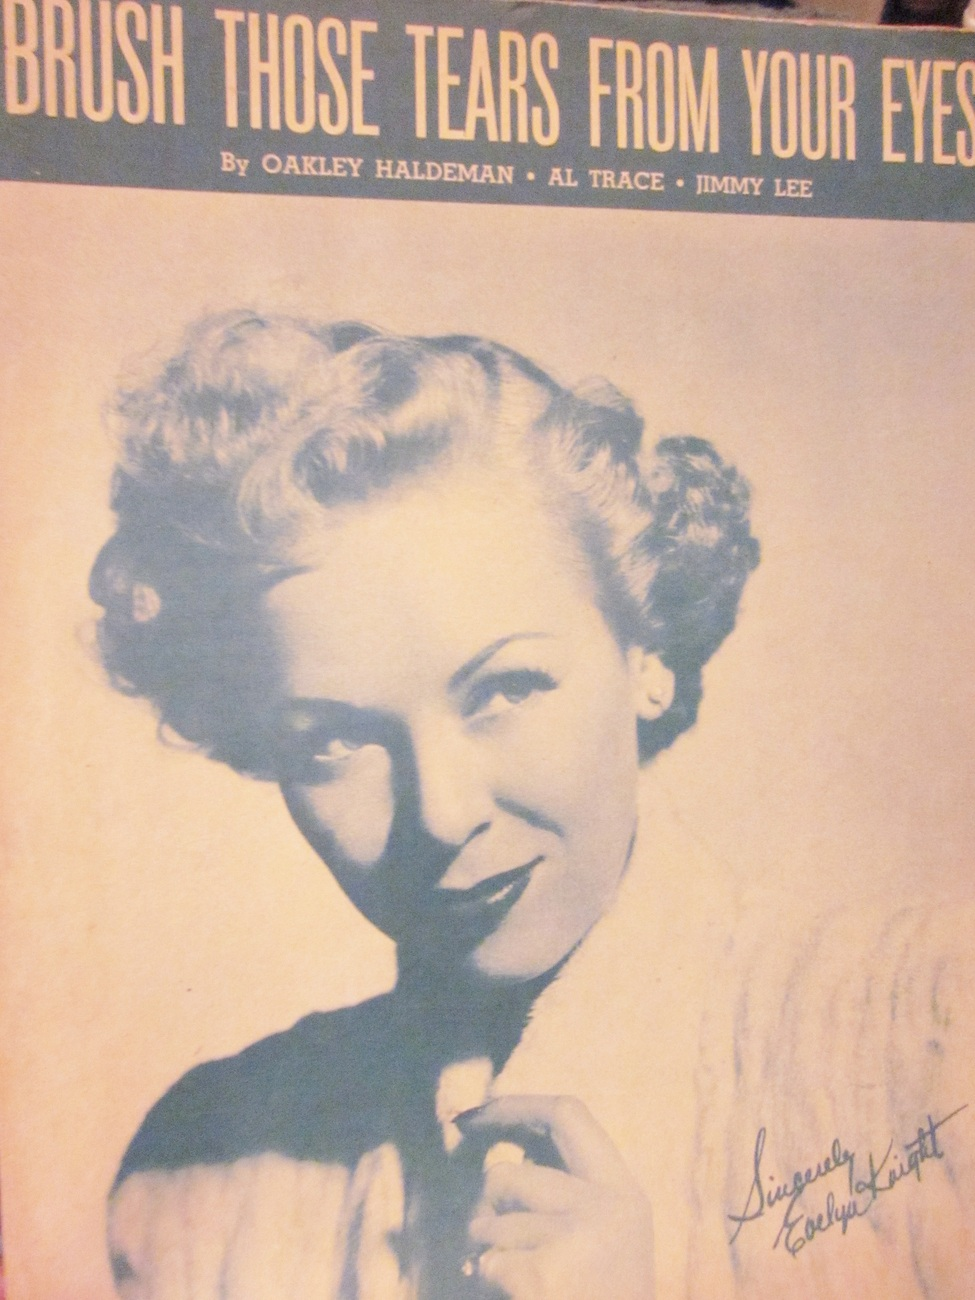 Sheet Music Brush Those Tears From Your Eyes by O. Haldeman, A. Trace, J. Lee